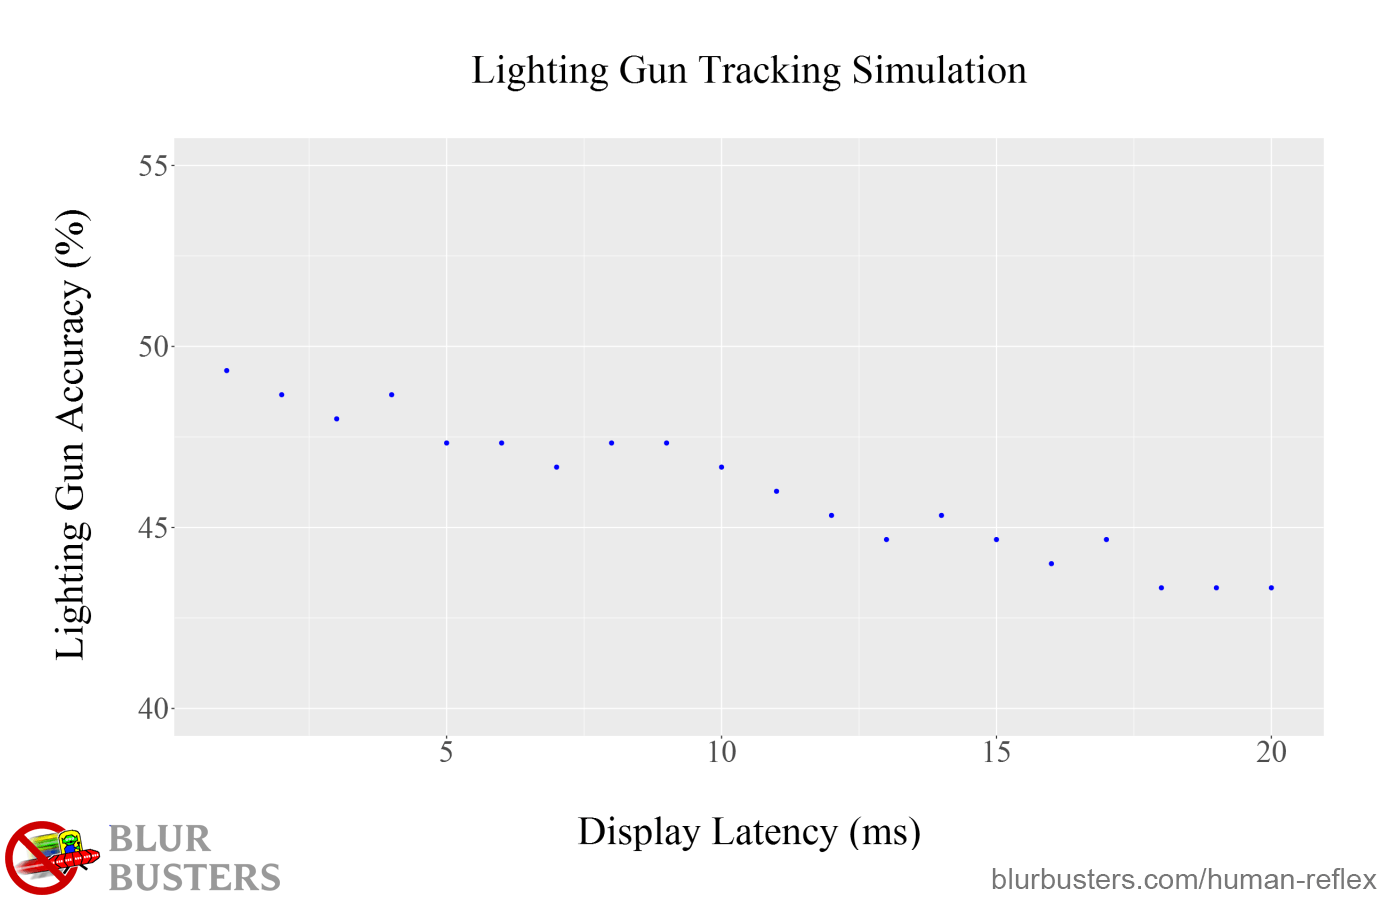 Blur Buster's Input Lag and the Limits of Human Reflex: Light Gun Tracking Simulation